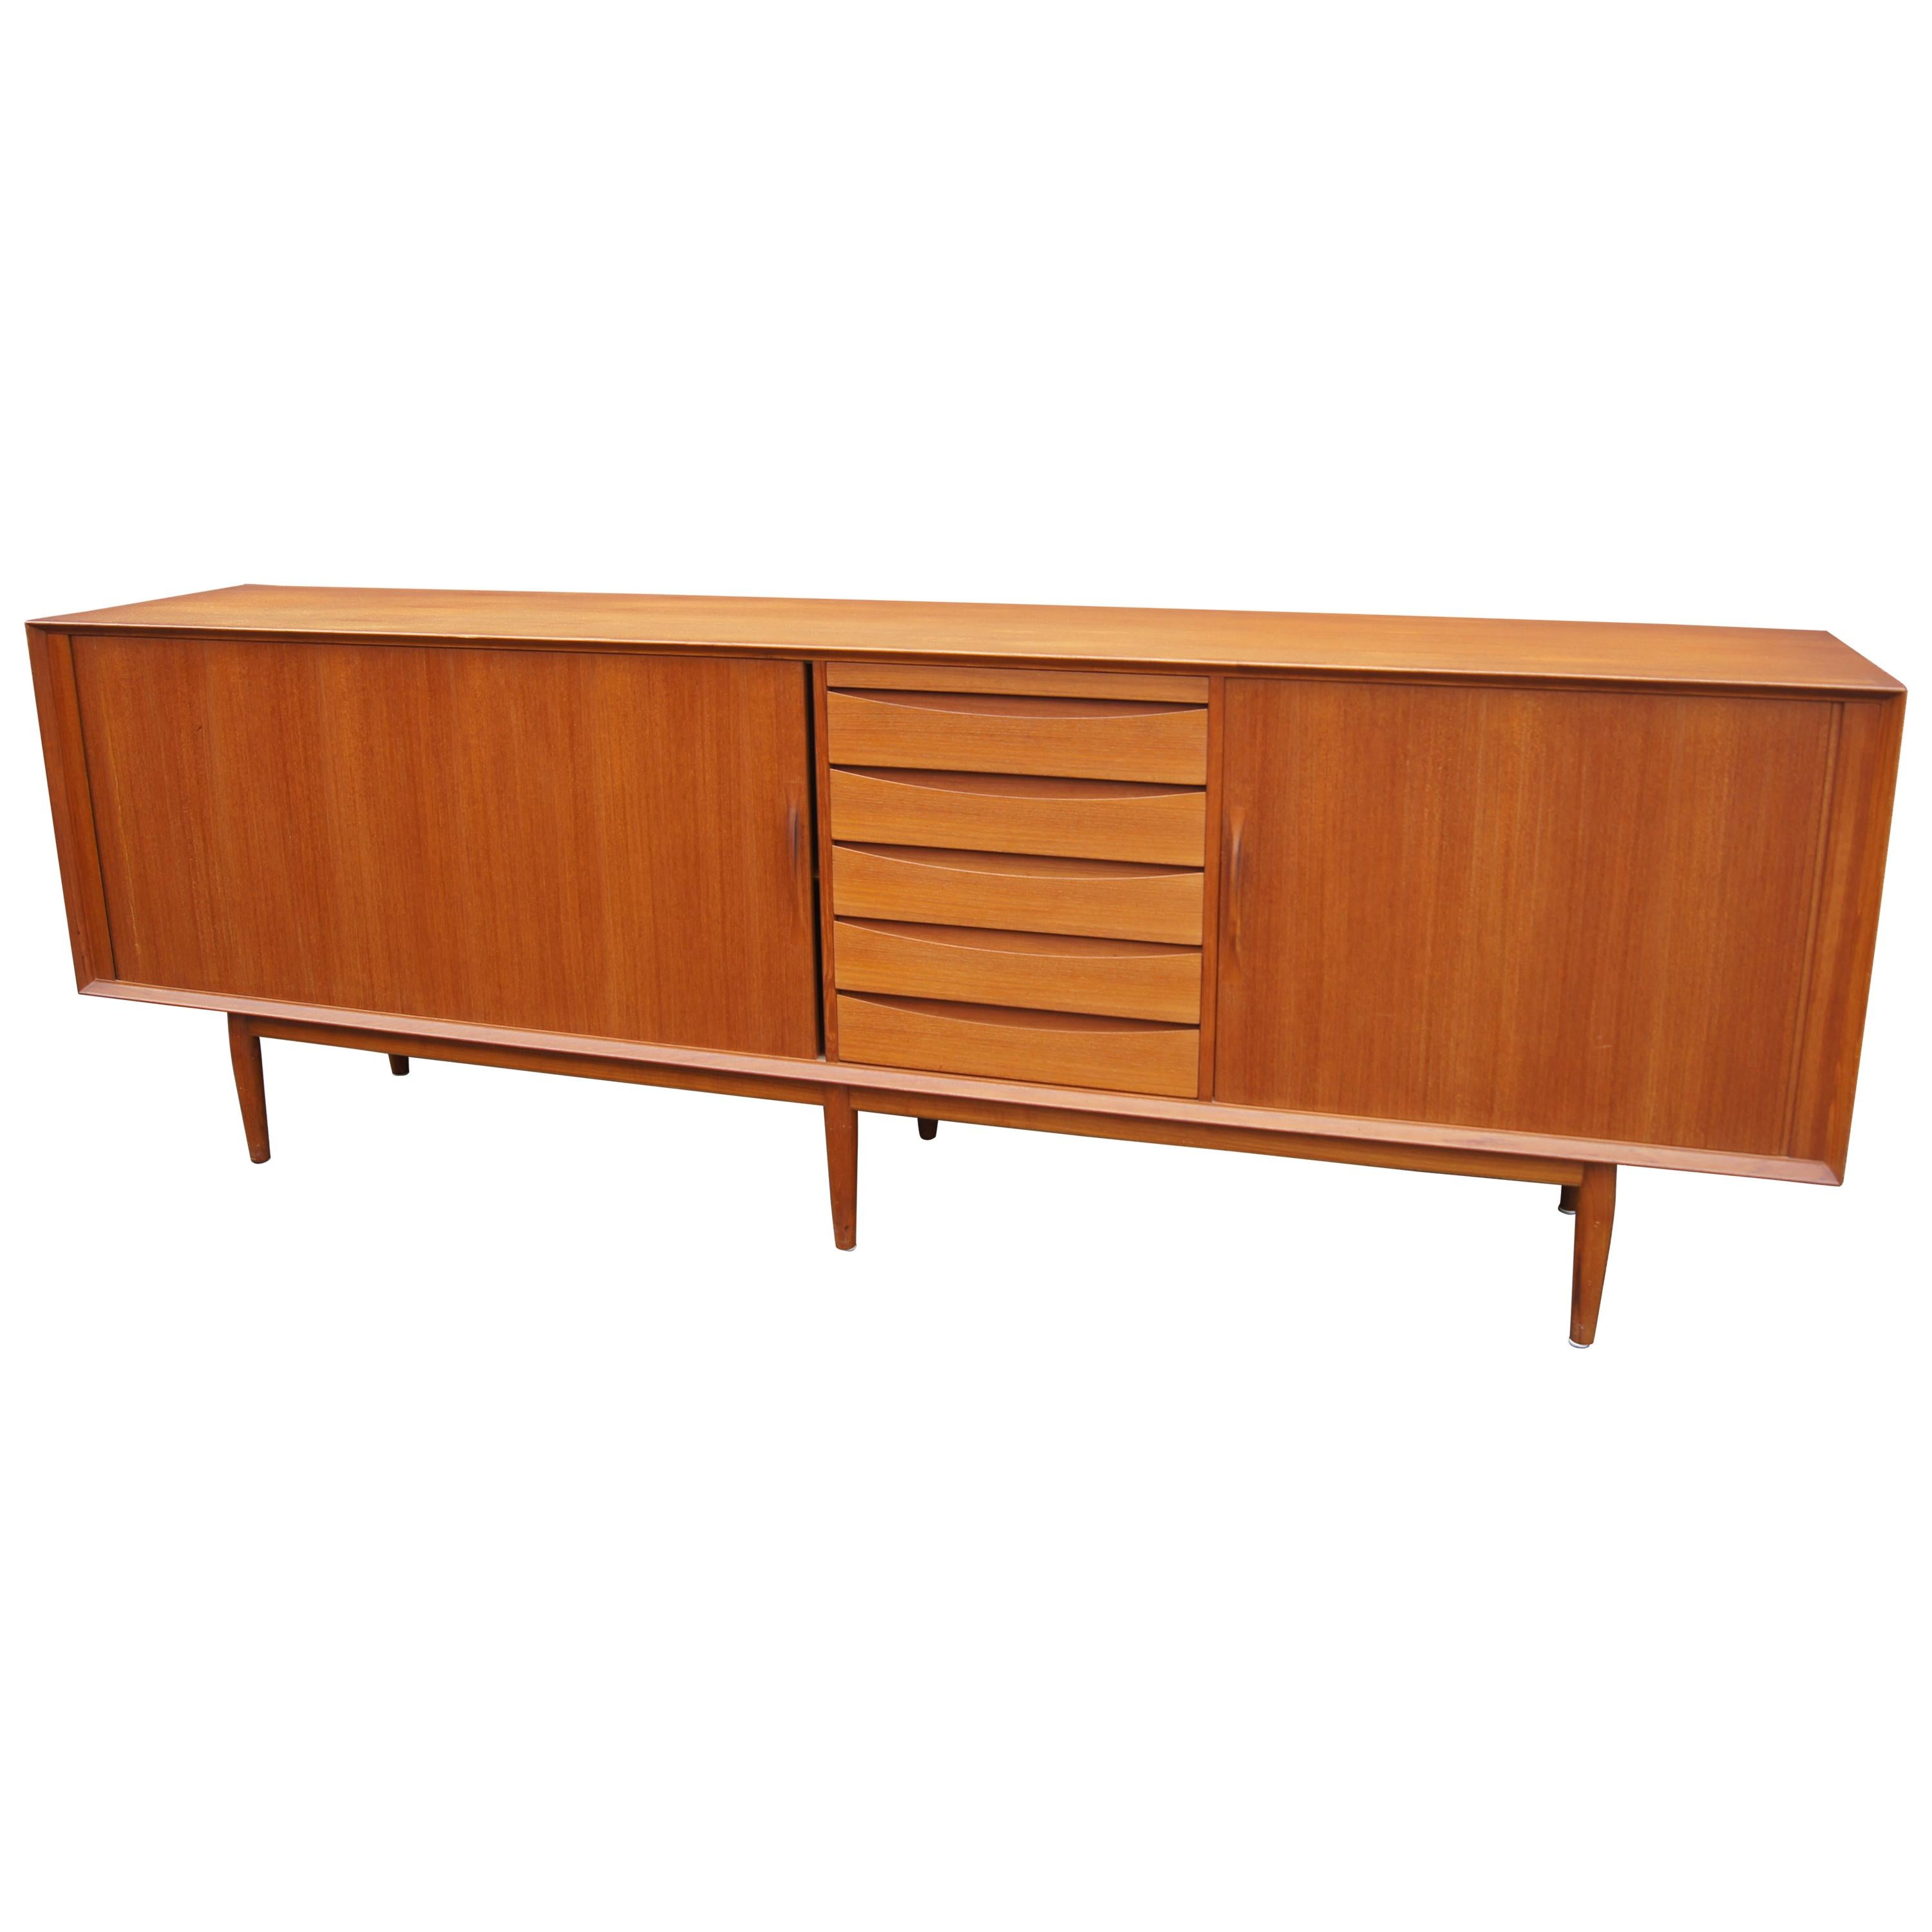 Teak Sideboard, Model 76, by Arne Vodder for Sibast